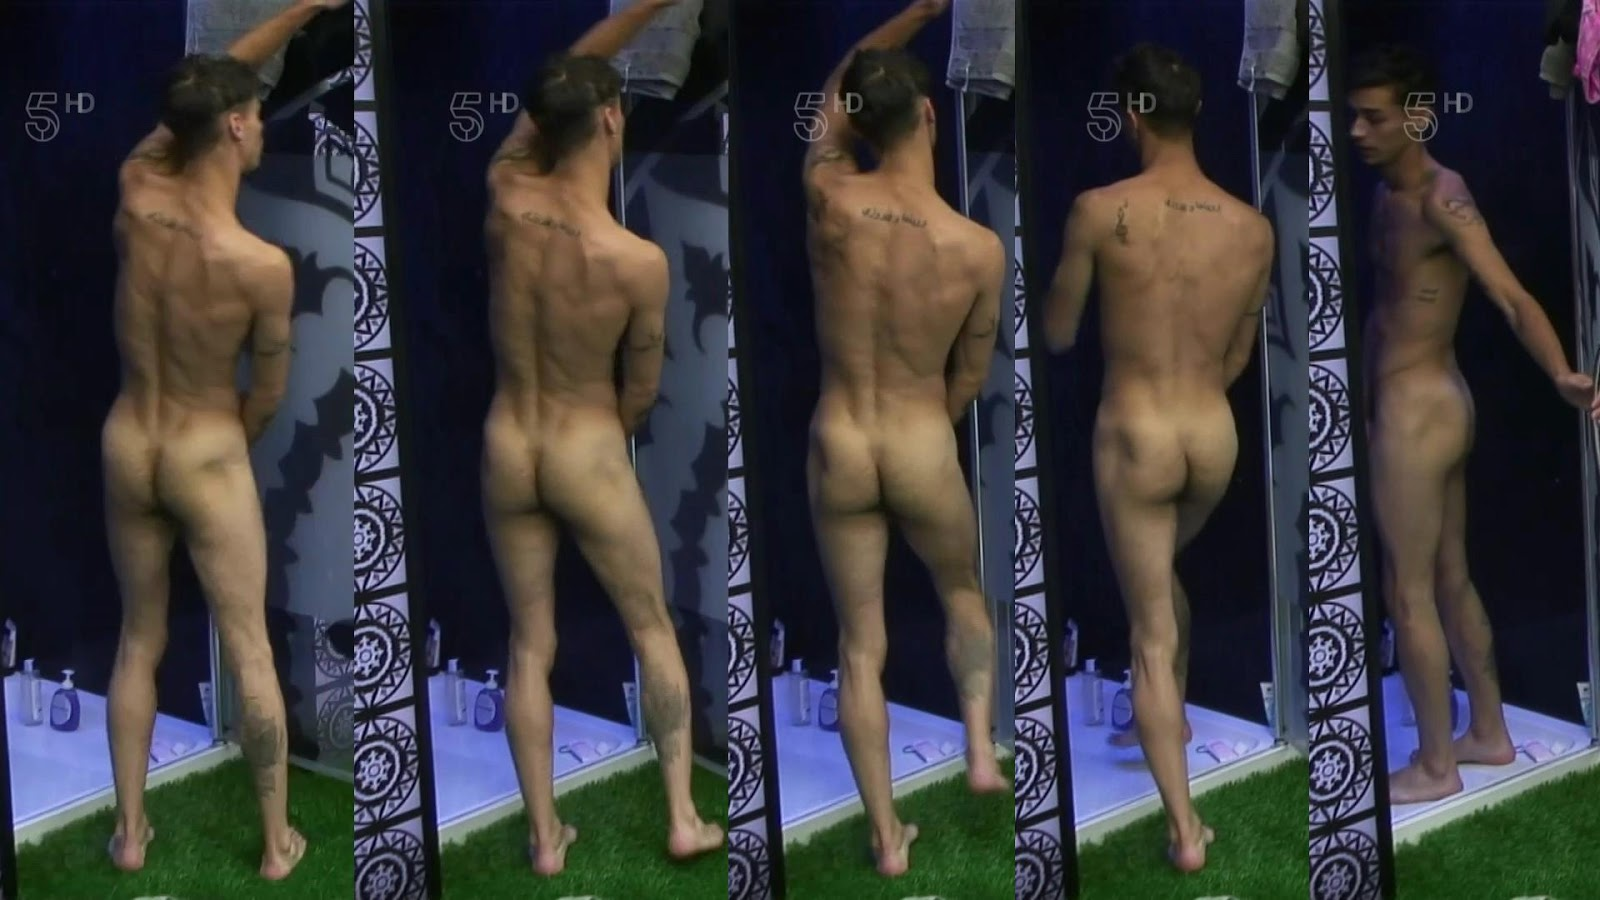 Big brother's star isaac jagroop leaked huge cock thefappening photos